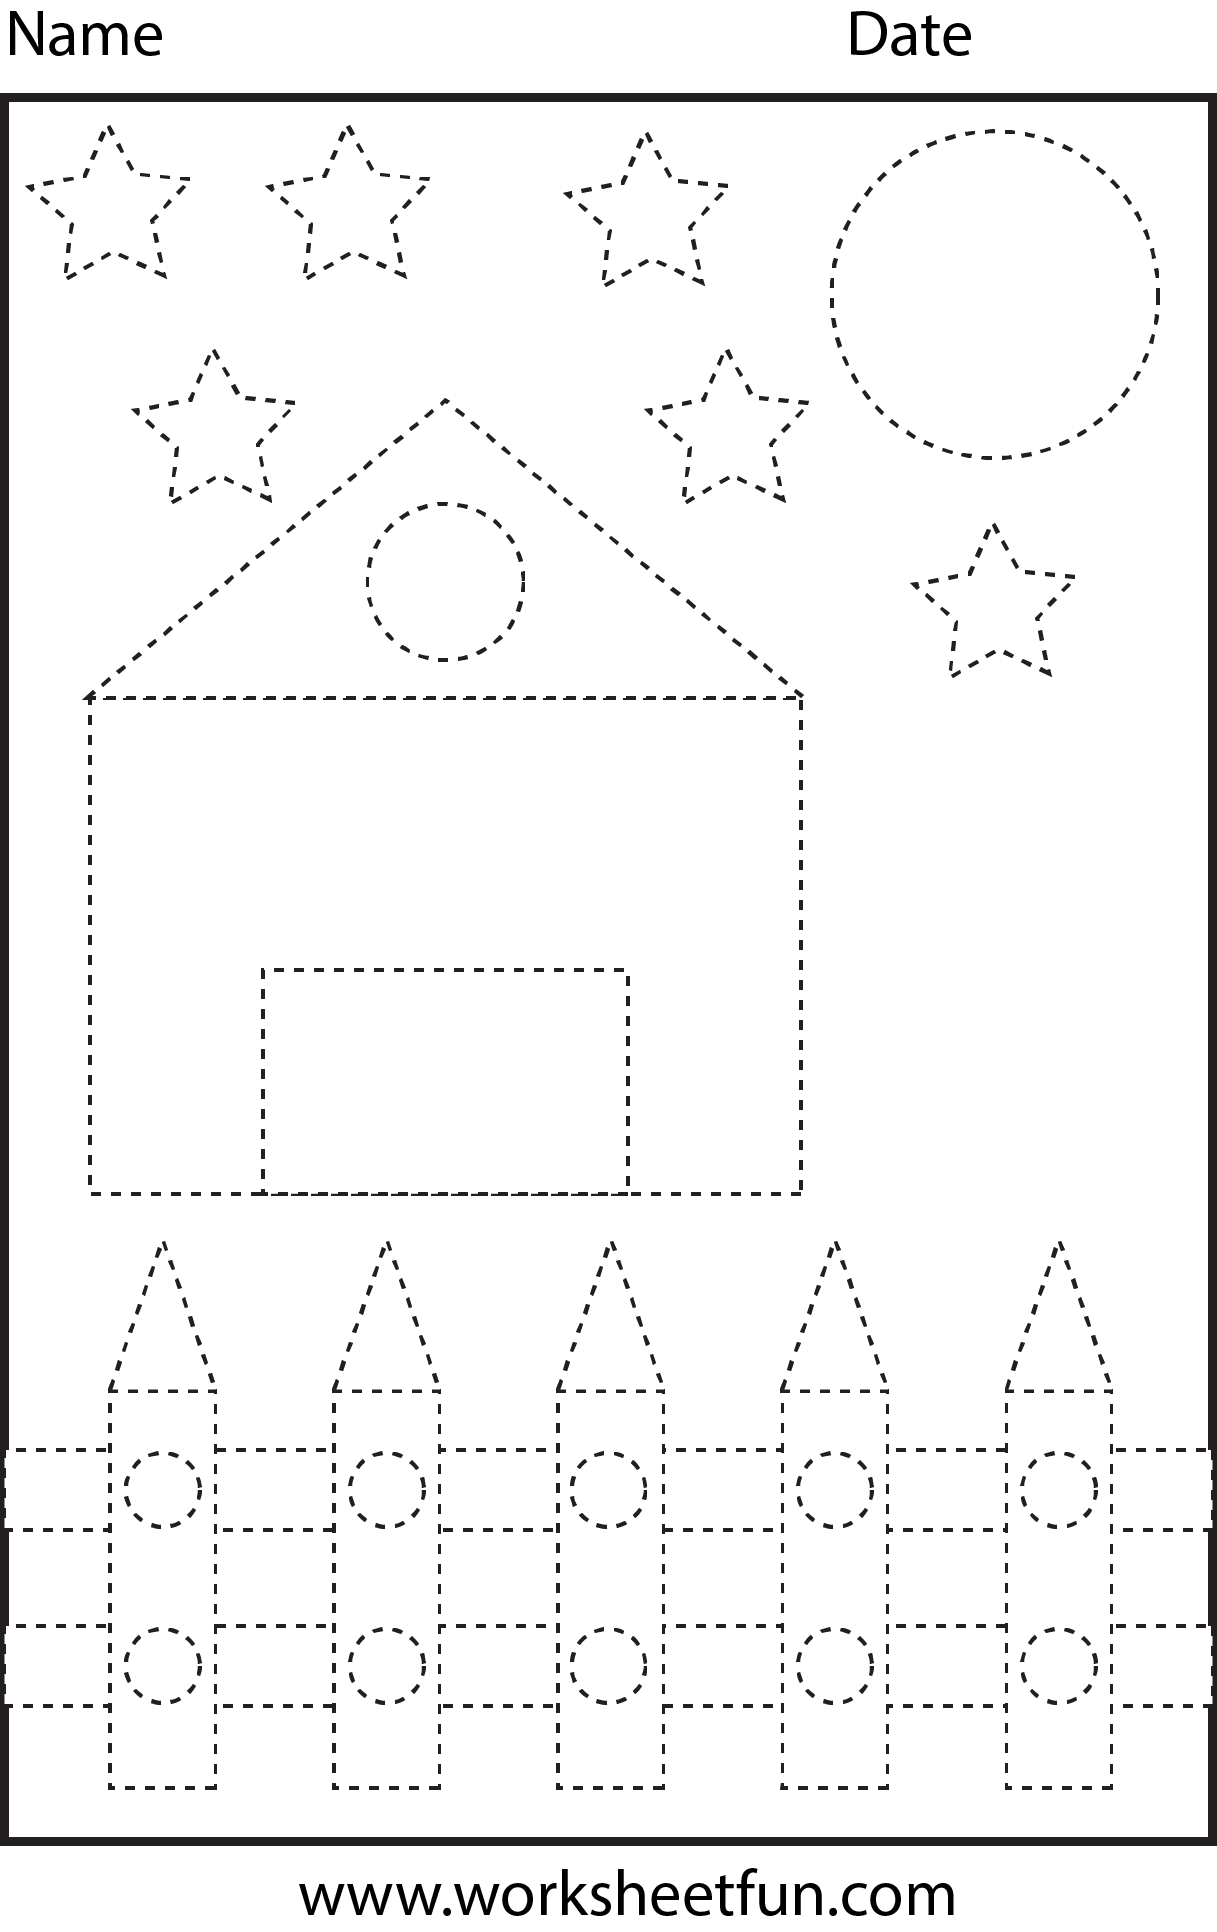 Picture Tracing Shapes 1 Worksheet Free Printable Worksheets Shape Tracing Worksheets Tracing Worksheets Preschool Shapes Preschool [ 1932 x 1217 Pixel ]